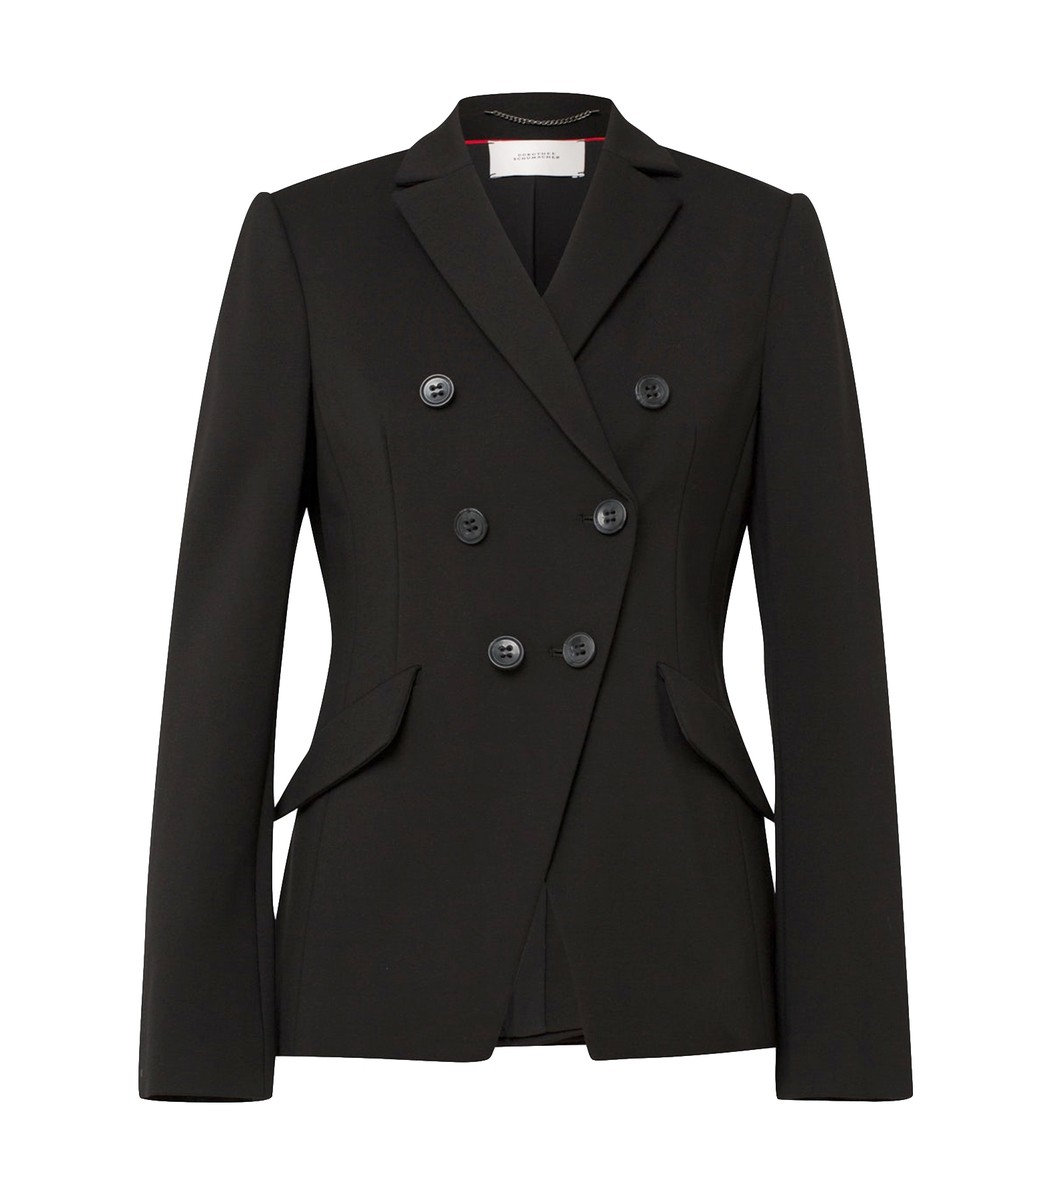 Dorothee Schumacher Pure Black Emotional Essence Blazer